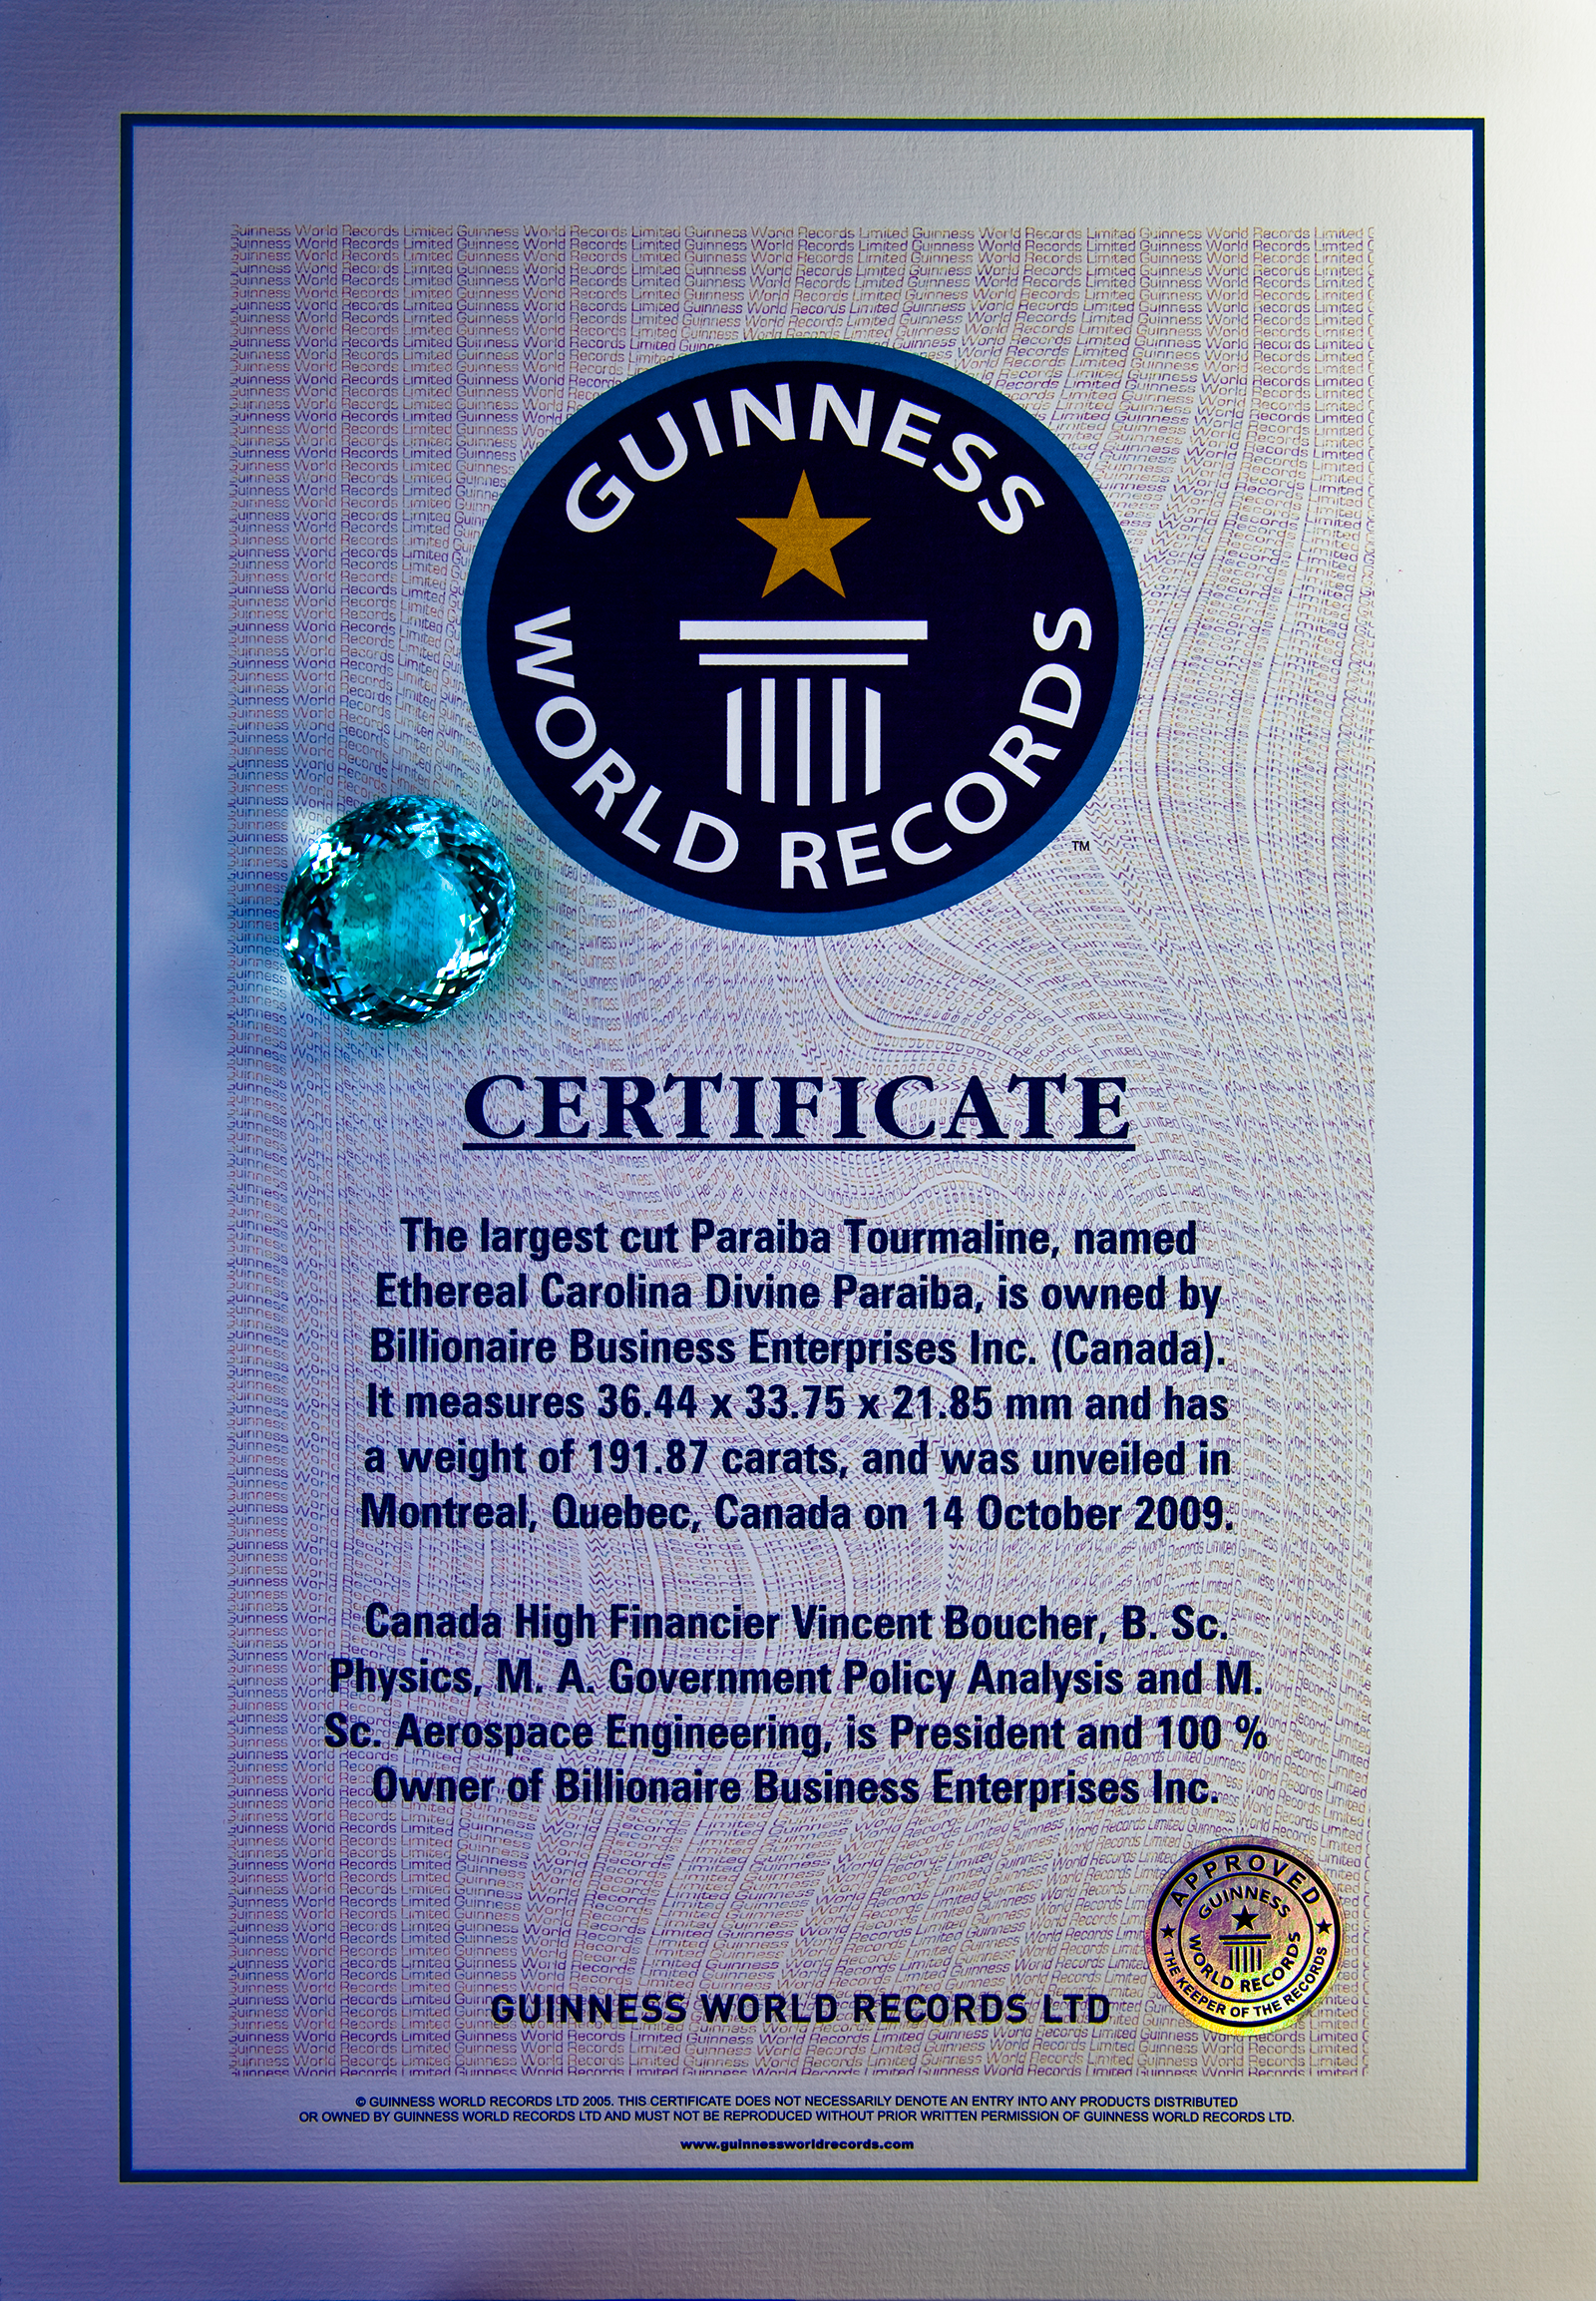 Montreal.AI's Chairman Vincent Boucher holds a Guinness World Records in the fine arts and high jewelry industry: http://www.billionaire.tv/TheGazette.pdf